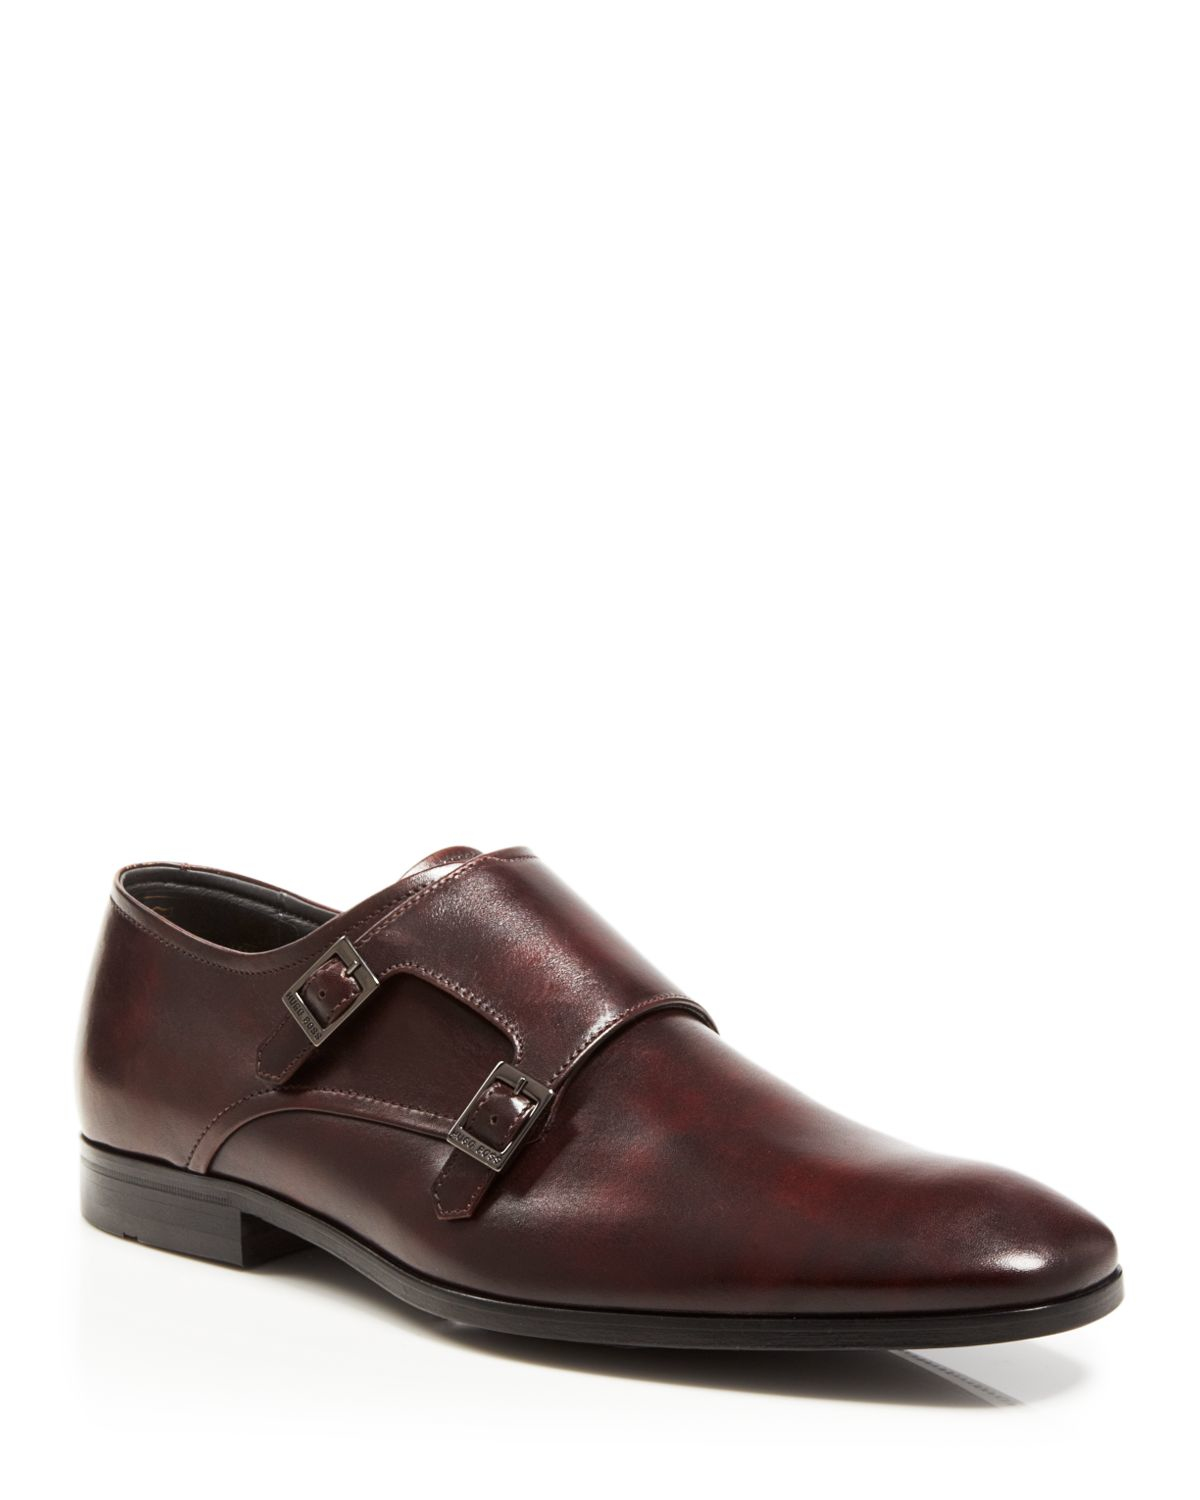 Monk Strap Shoes Australia